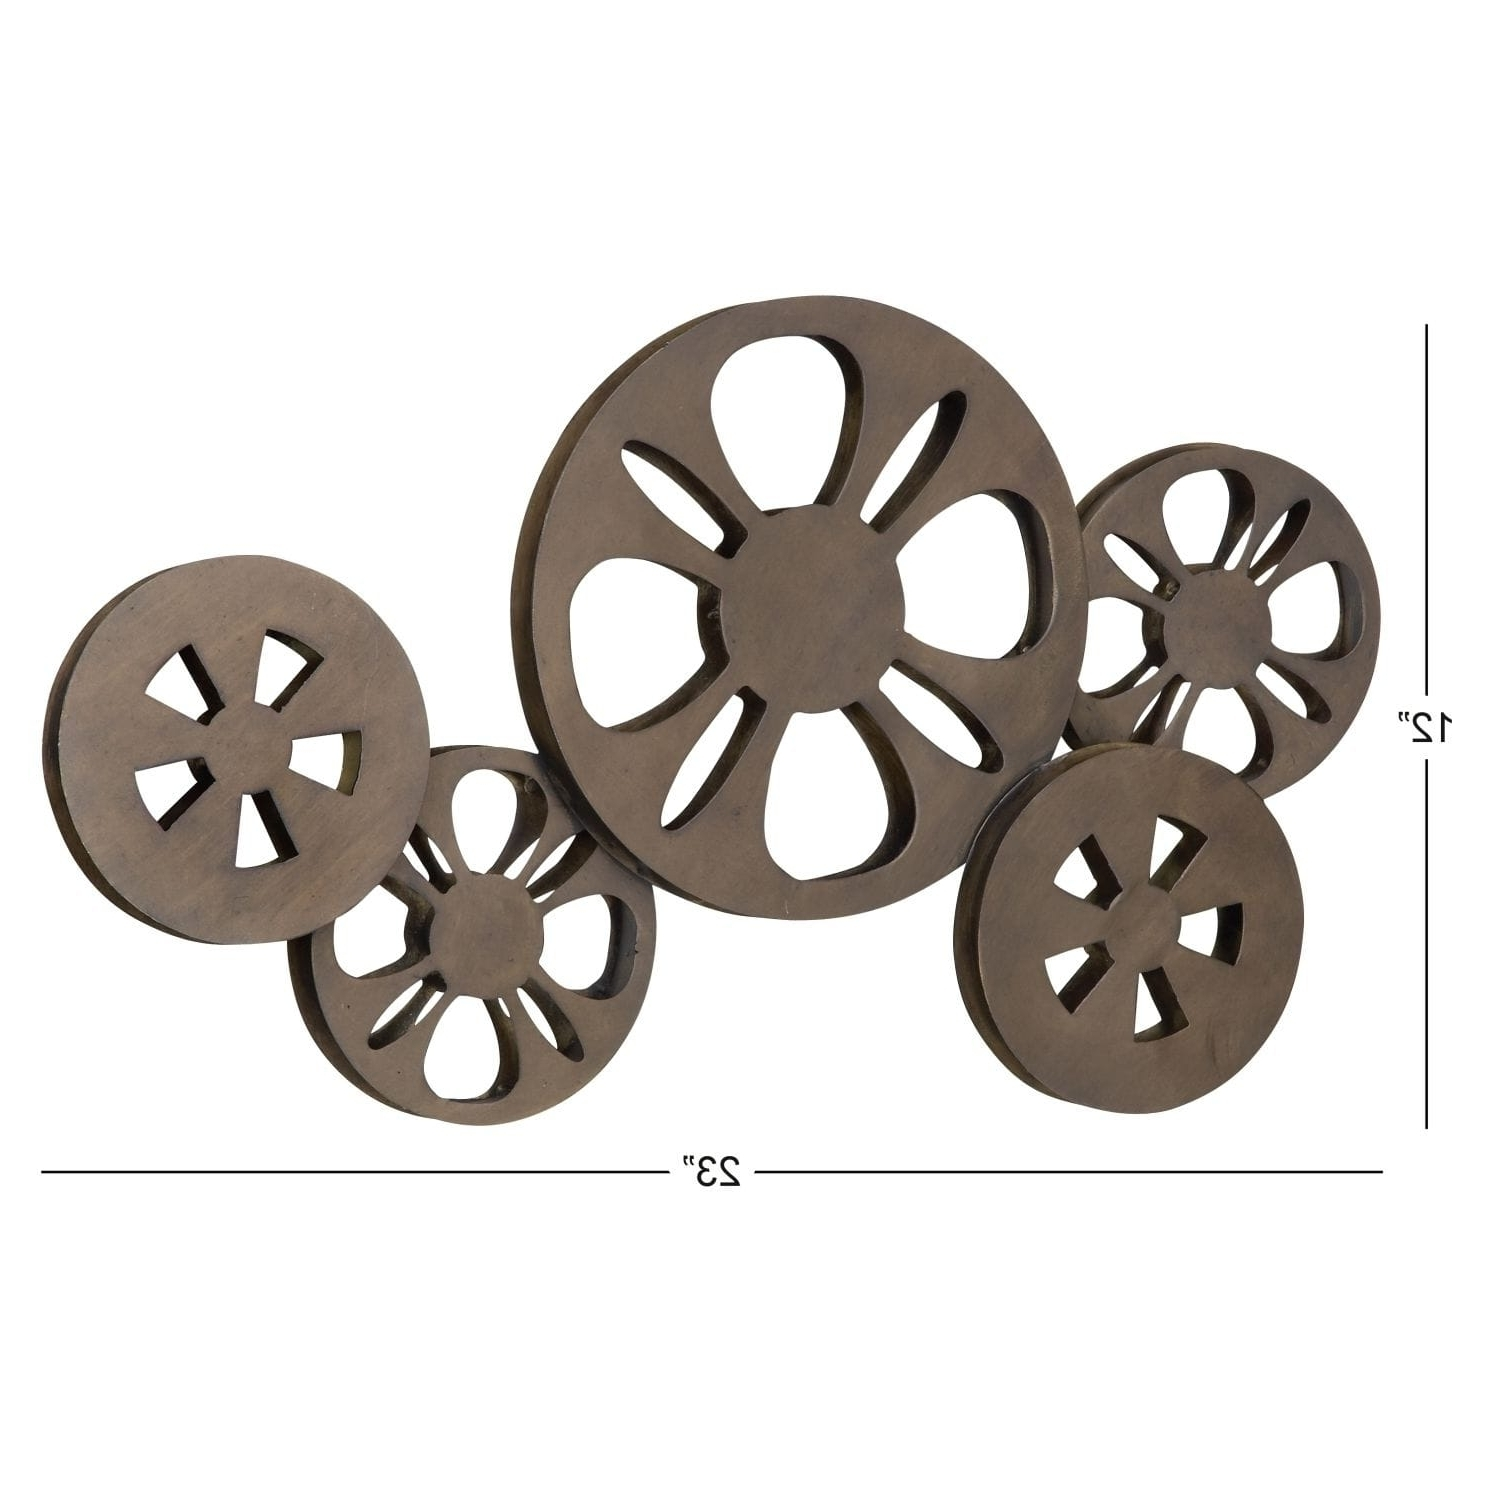 Preferred Antique Bronze Movie Reel Metal Wall Art – Free Shipping Today In Movie Reel Wall Art (View 11 of 15)